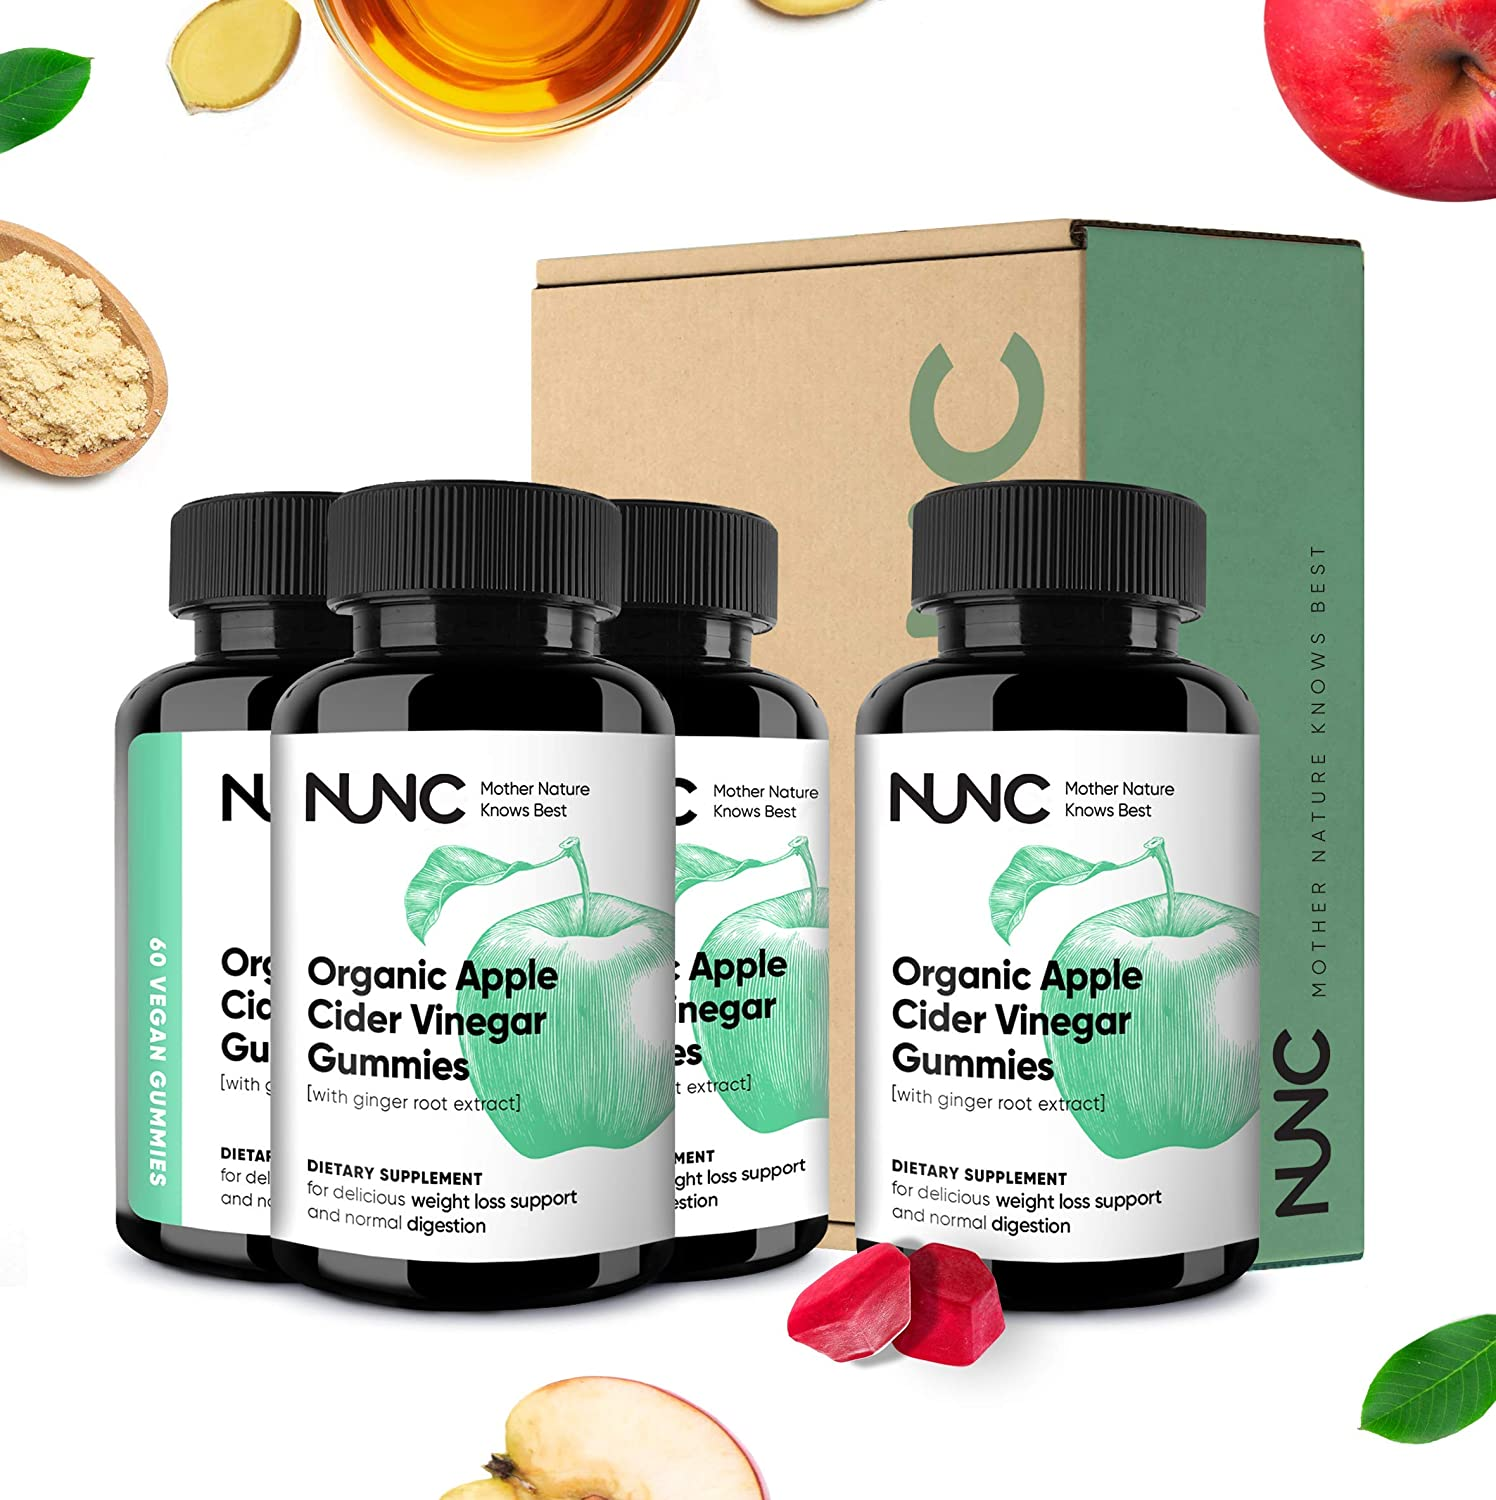 NUNC Apple Cider Vinegar Gummies - 4 Pack - Unfiltered Organic ACV w/Ginger Root Extract | Support Metabolic & Digestive Functions for Slimmer Feeling, Increased Energy, Detox & Cleanse - 240 Count